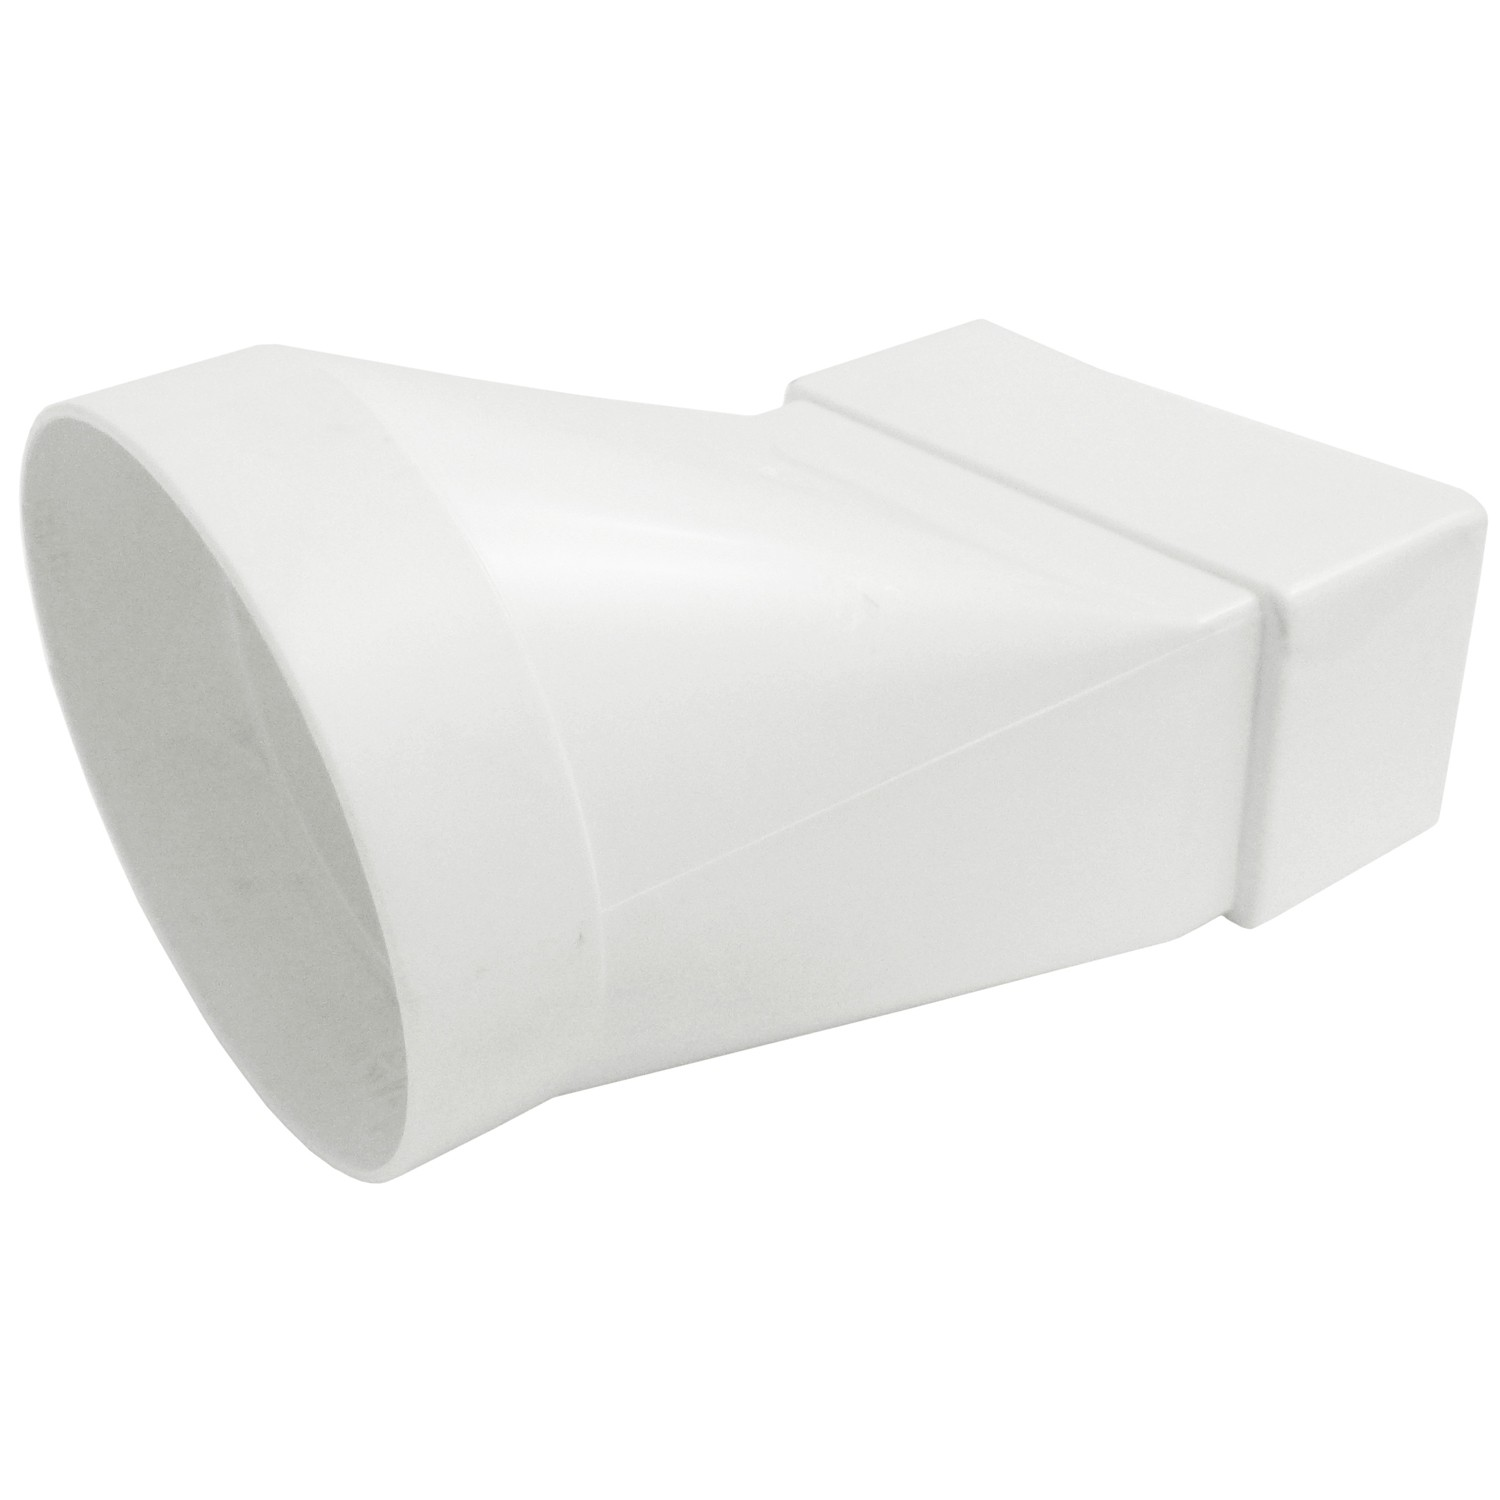 Manrose Round To Flat Ducting Pipe Long Adaptor - White, 100mm to 110mm x 54mm